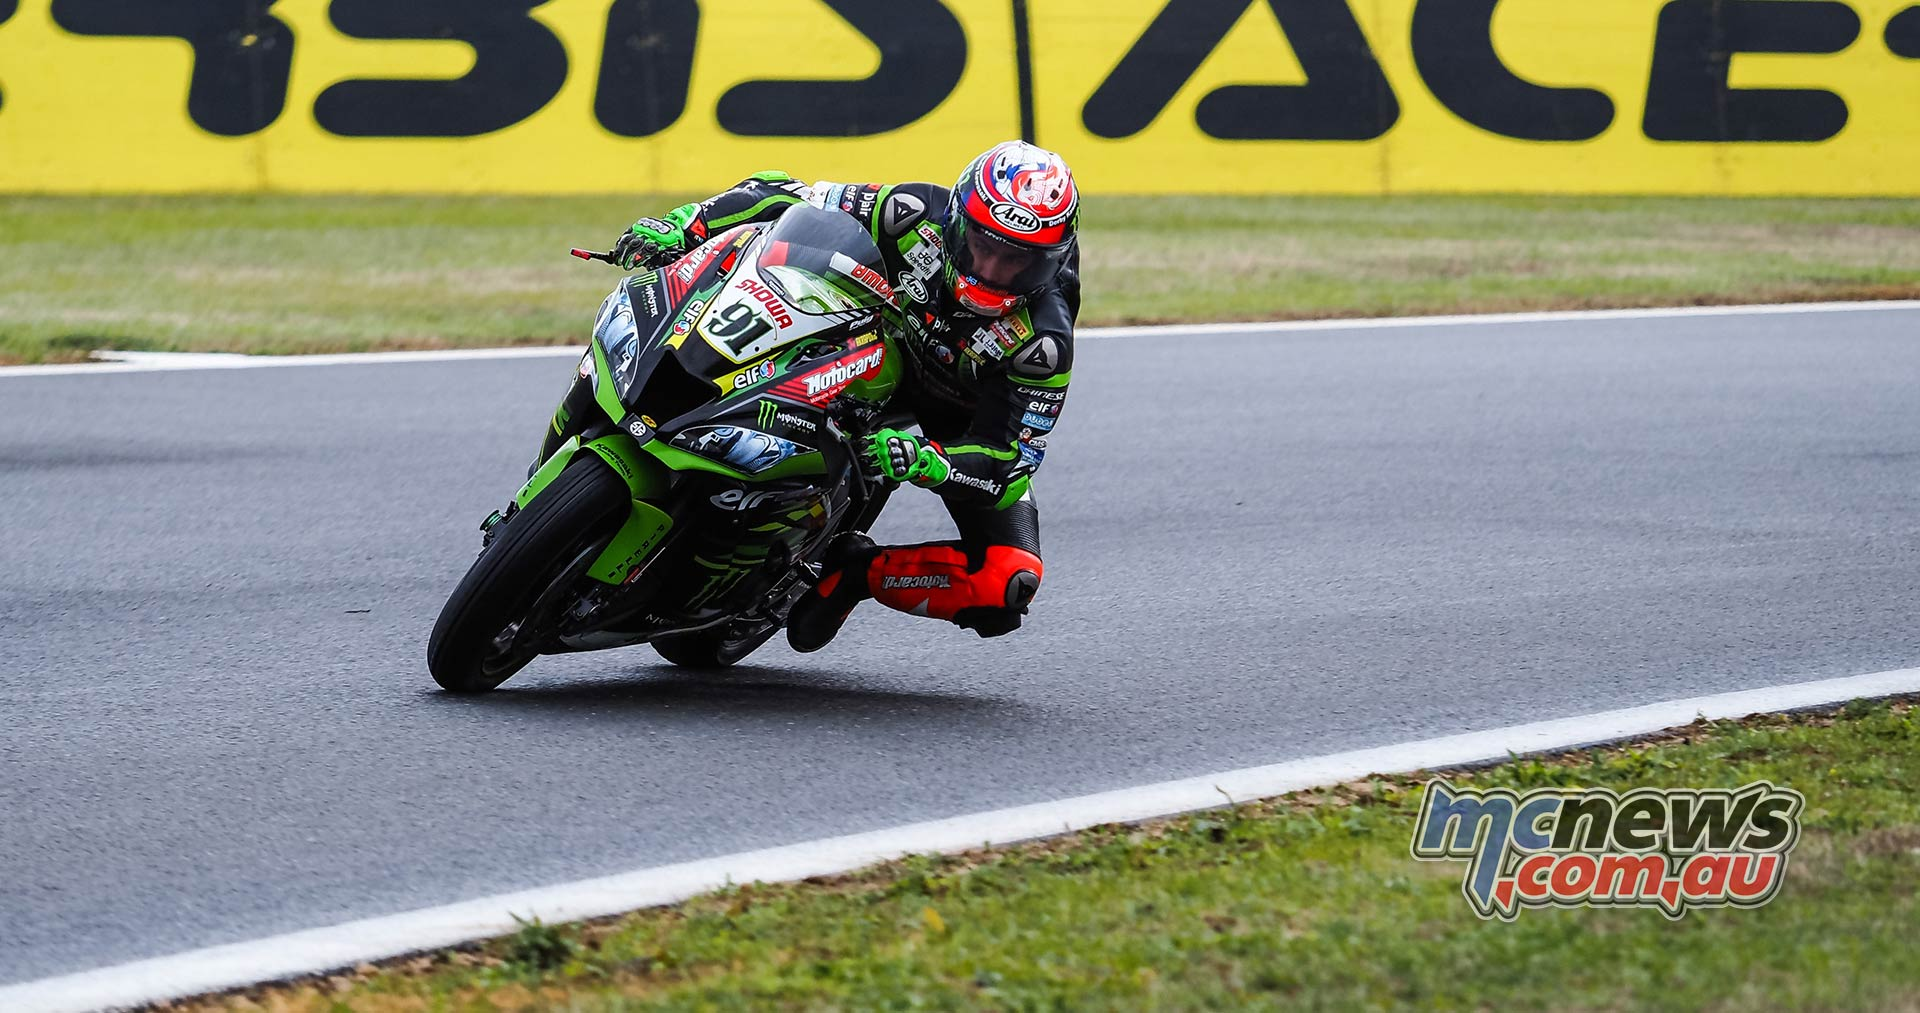 WSBK Rnd Magny Cours WorldSBK Friday Action Haslam